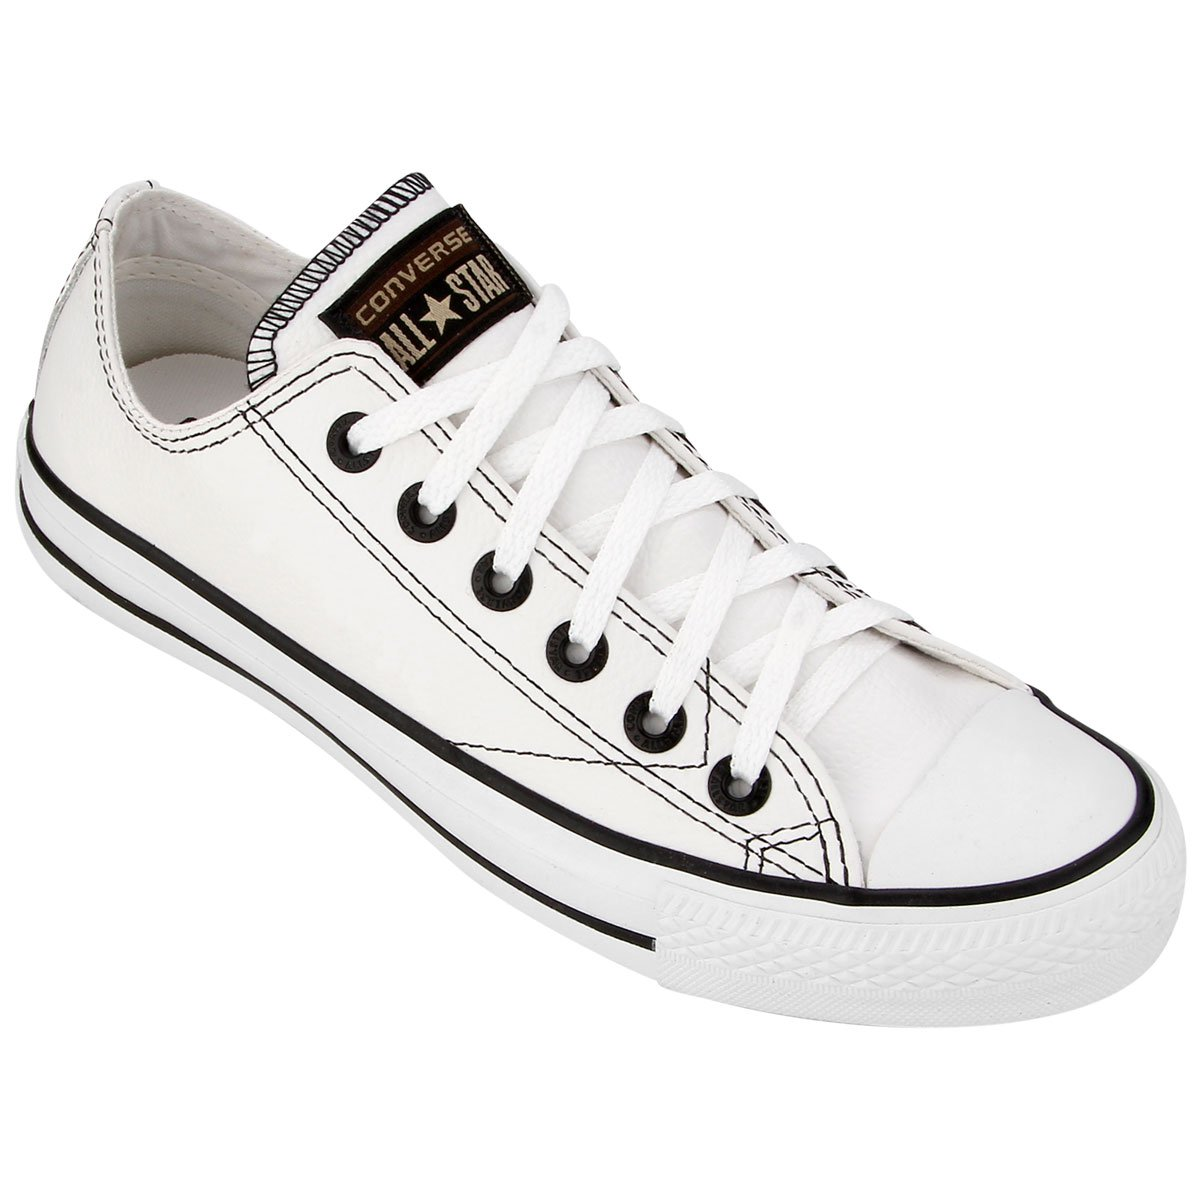 94c15614d9 converse all star nere di pelle